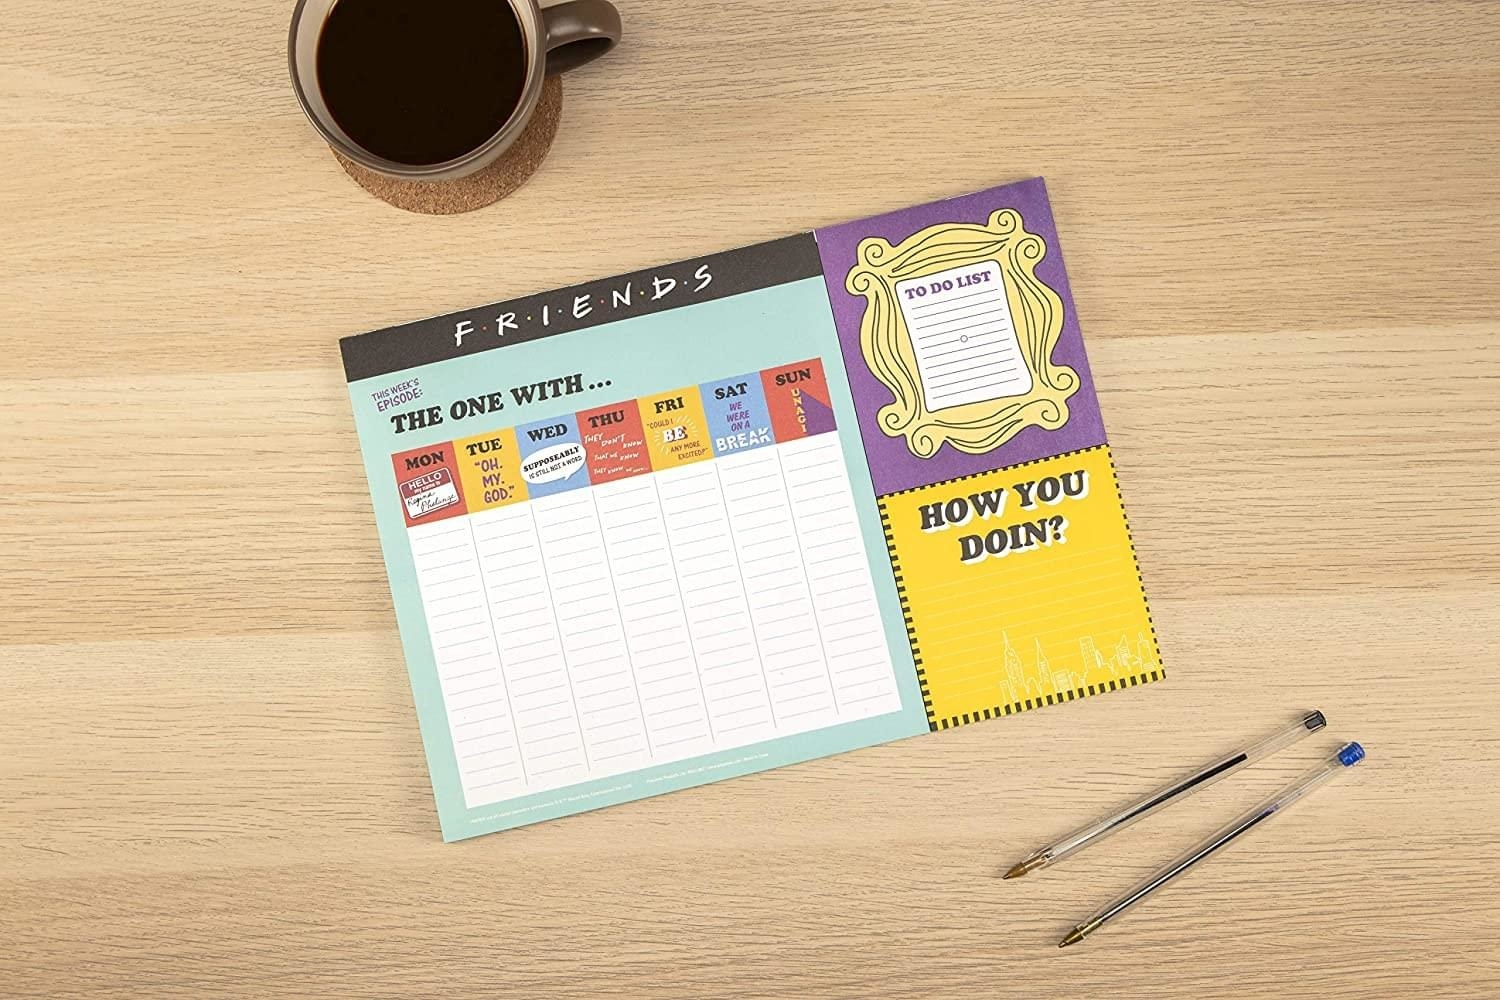 Friends-themed weekly calendar placed on desk